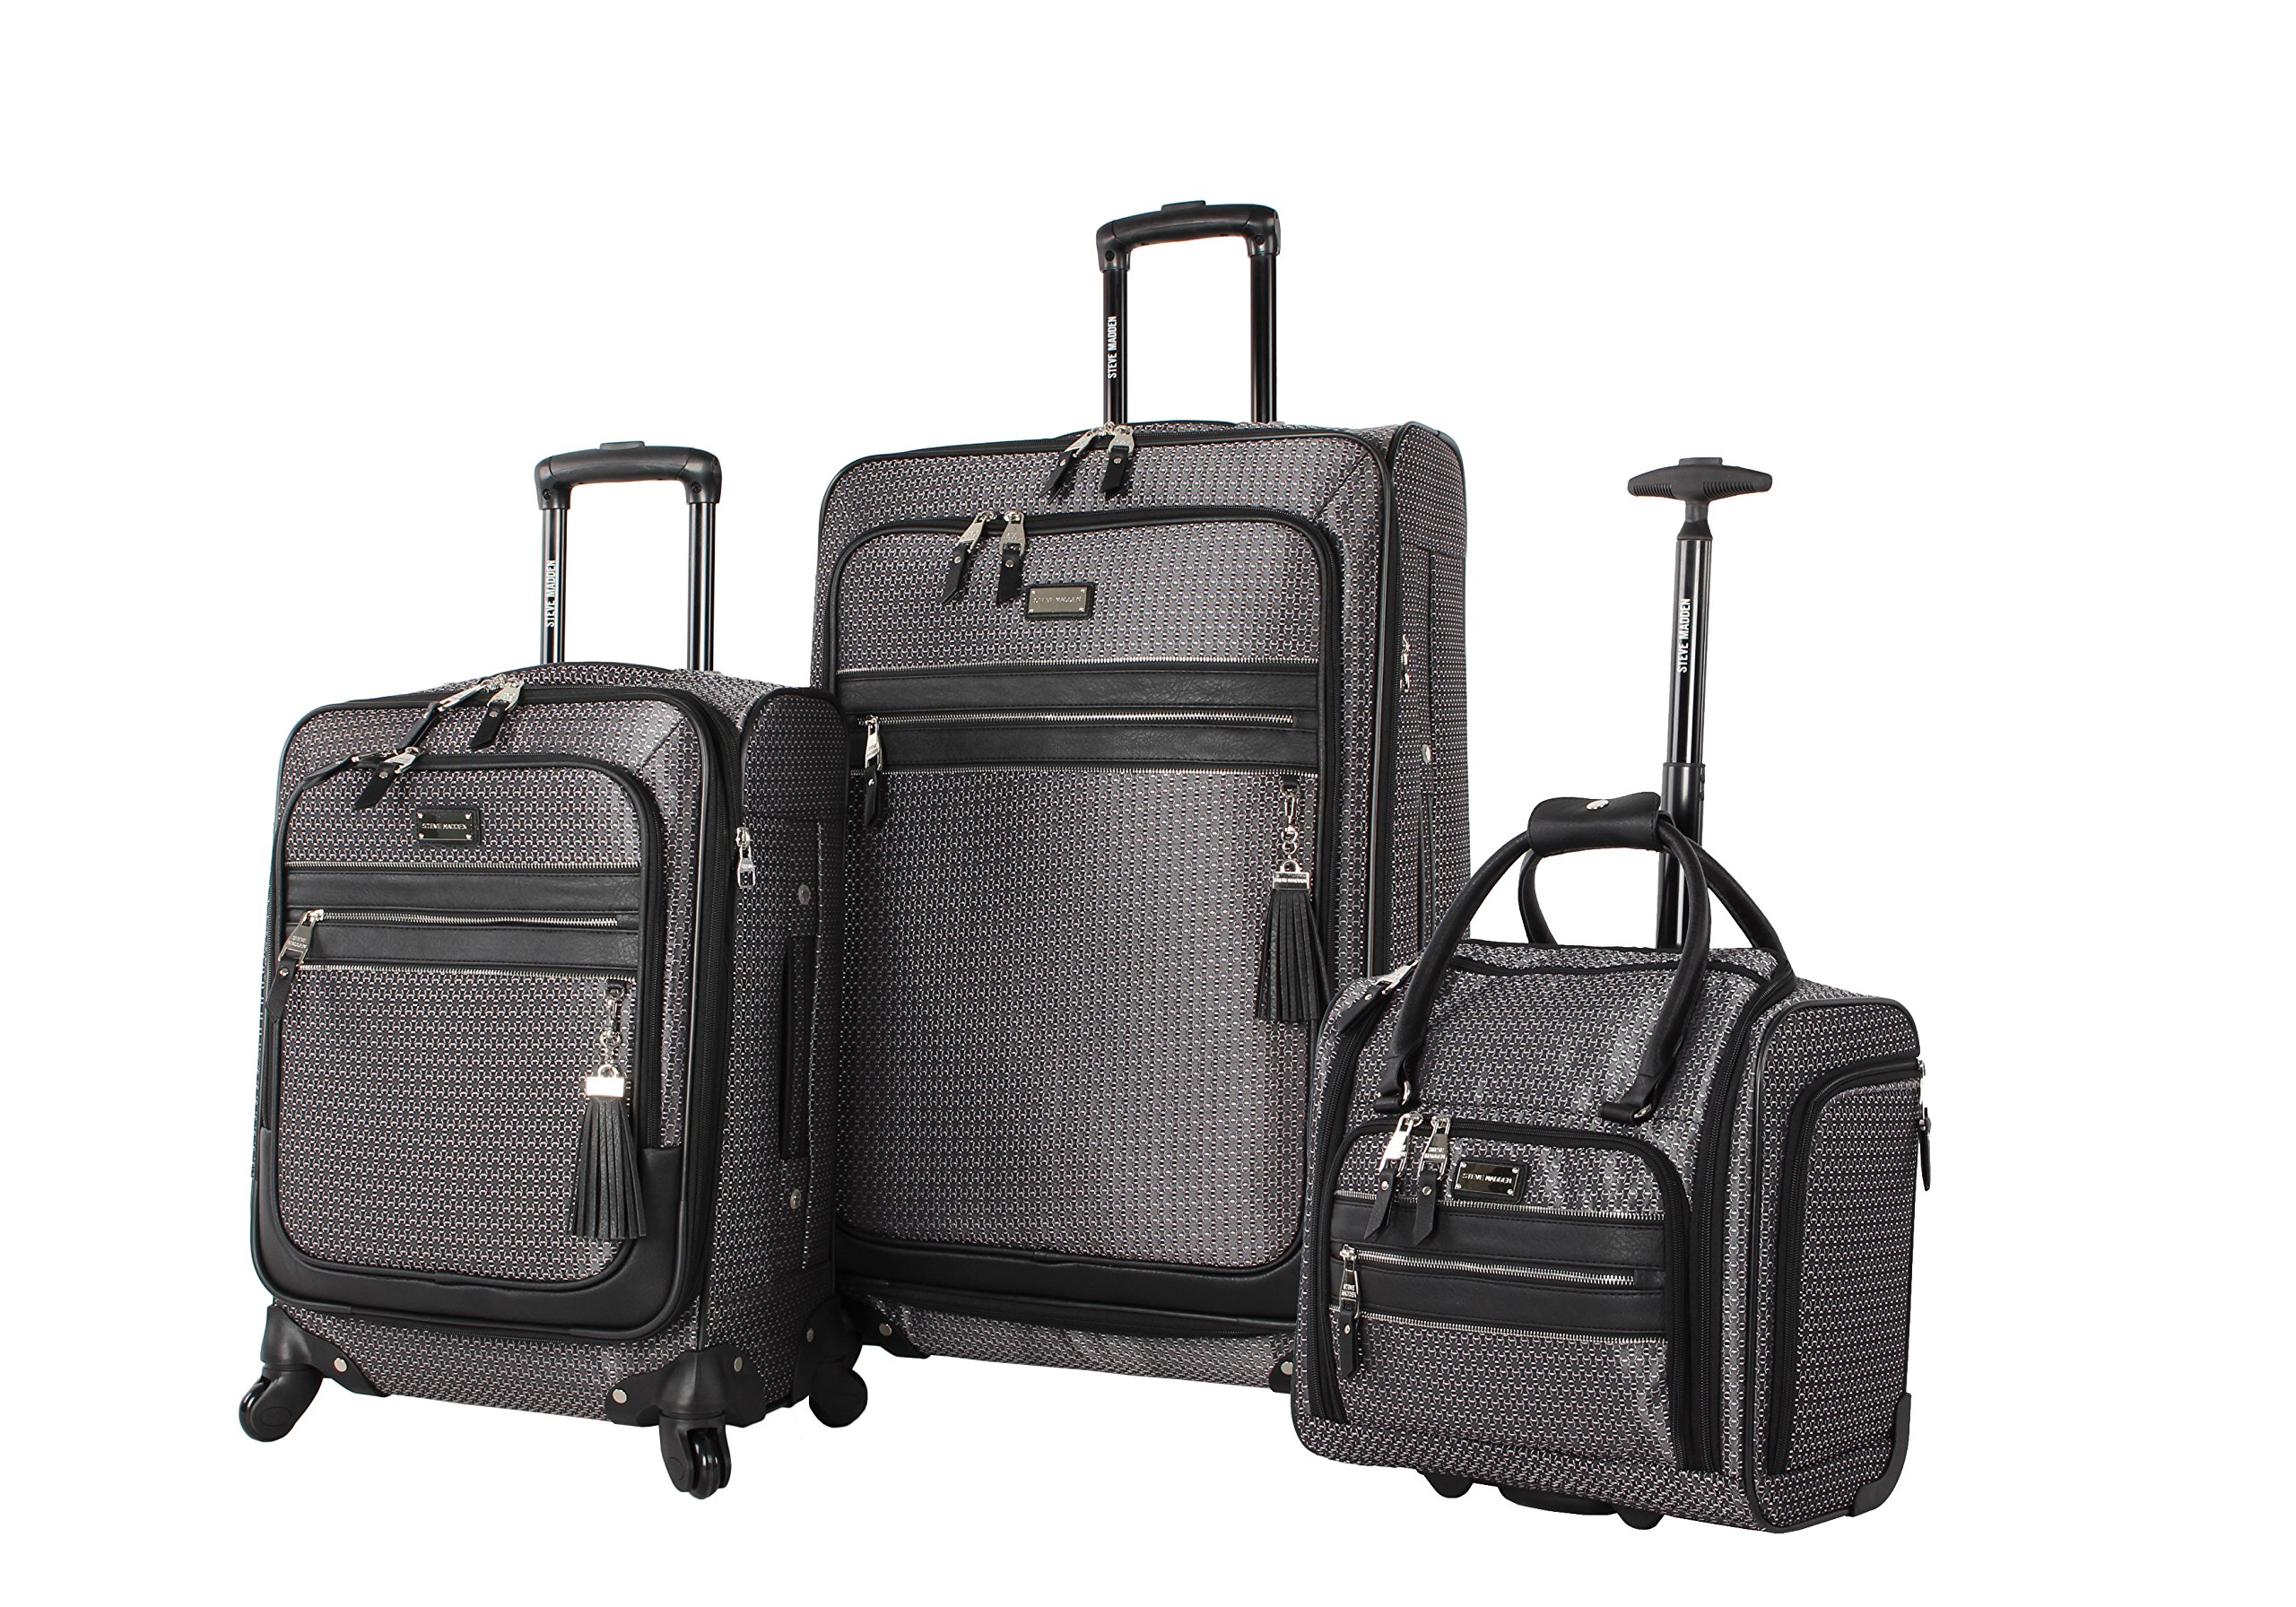 Steve Madden Luggage 3 Piece Softside Spinner Suitcase Set Collection (Luscious Silver)